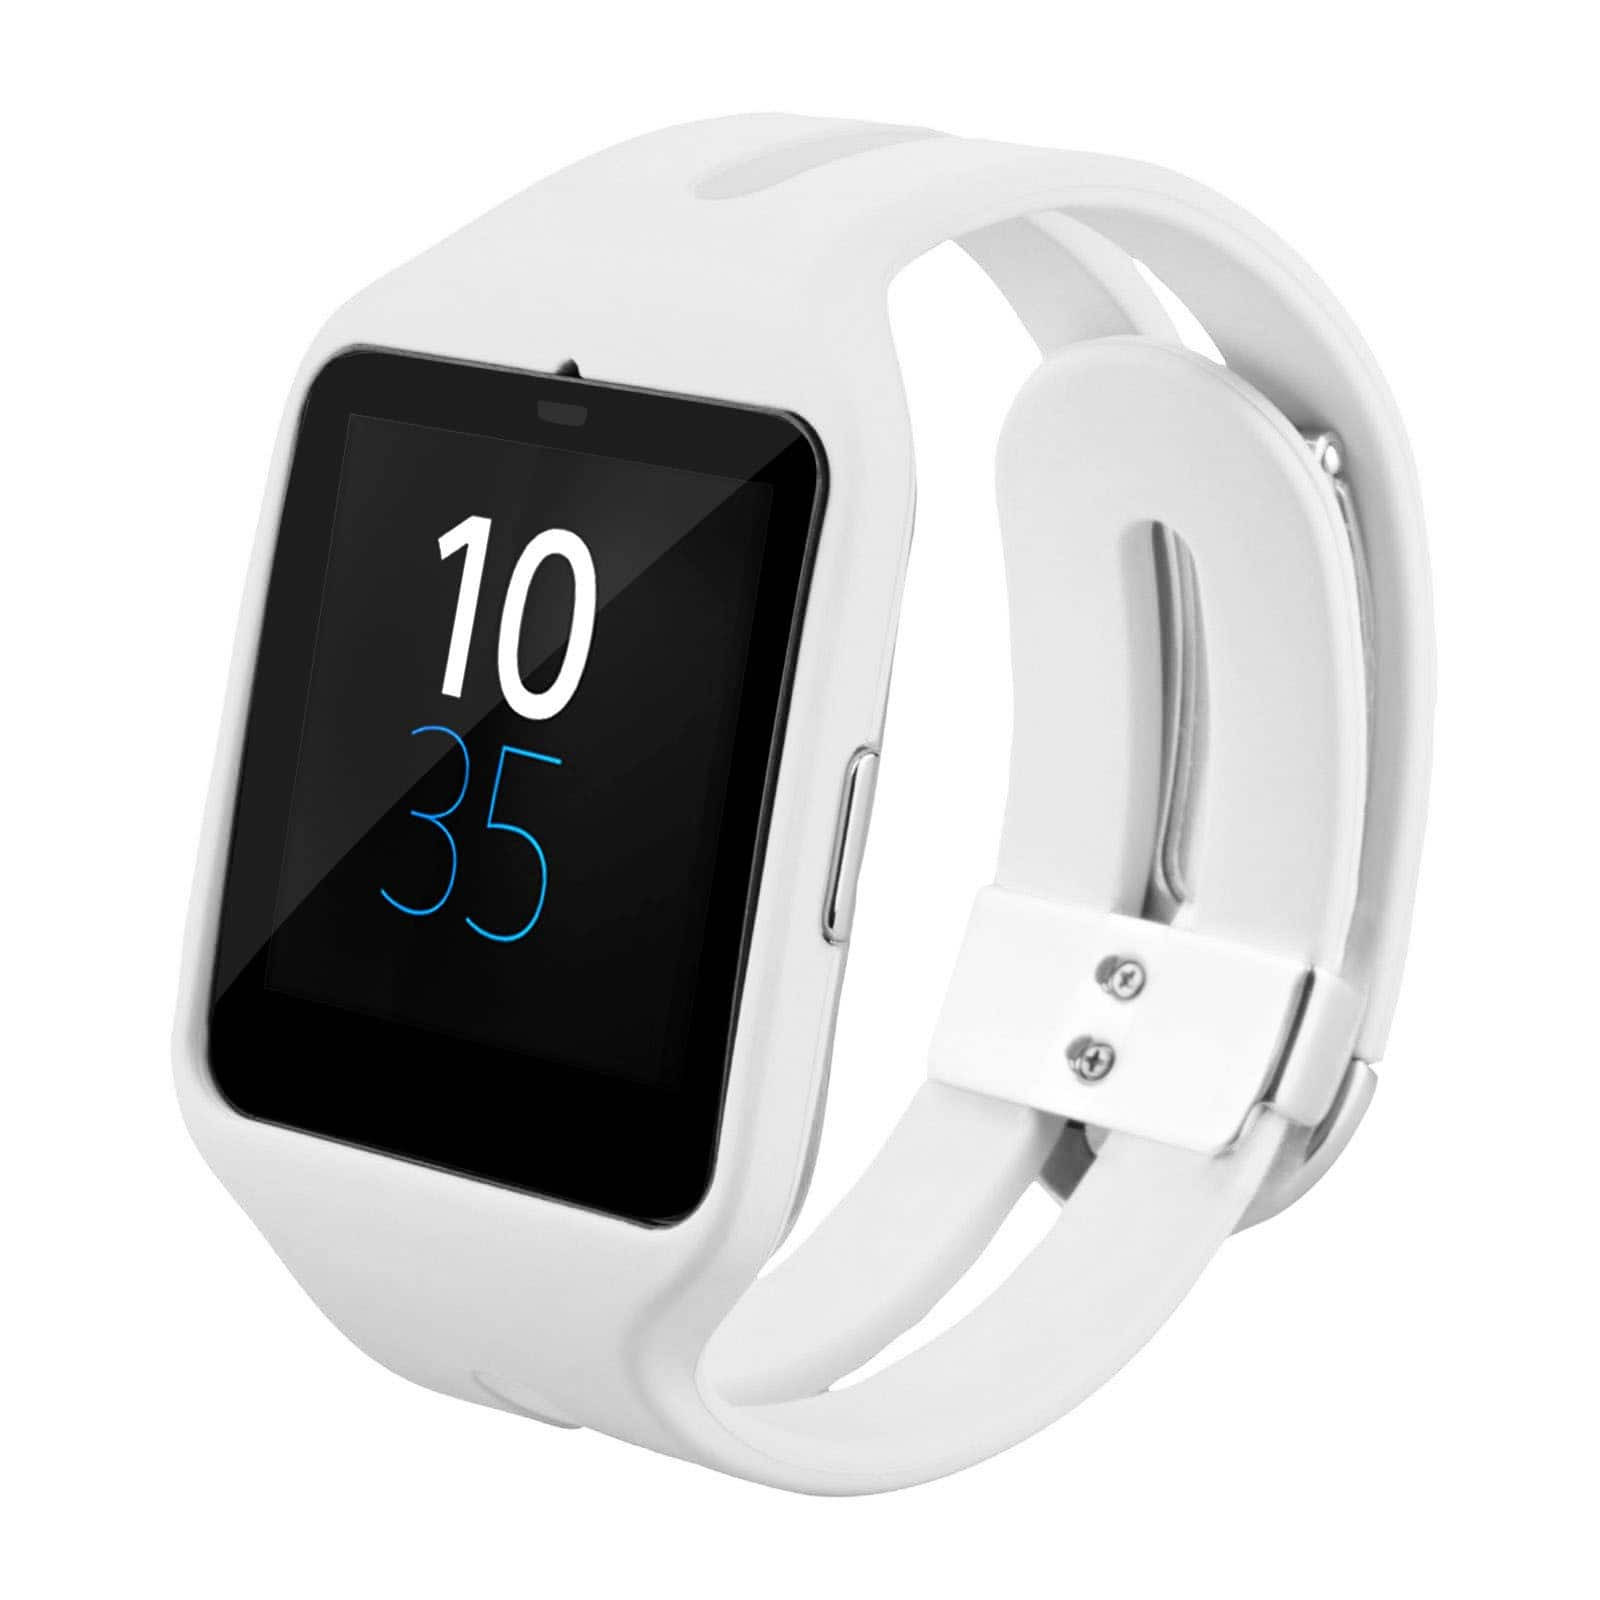 Sony SmartWatch 3 (White) $89.99